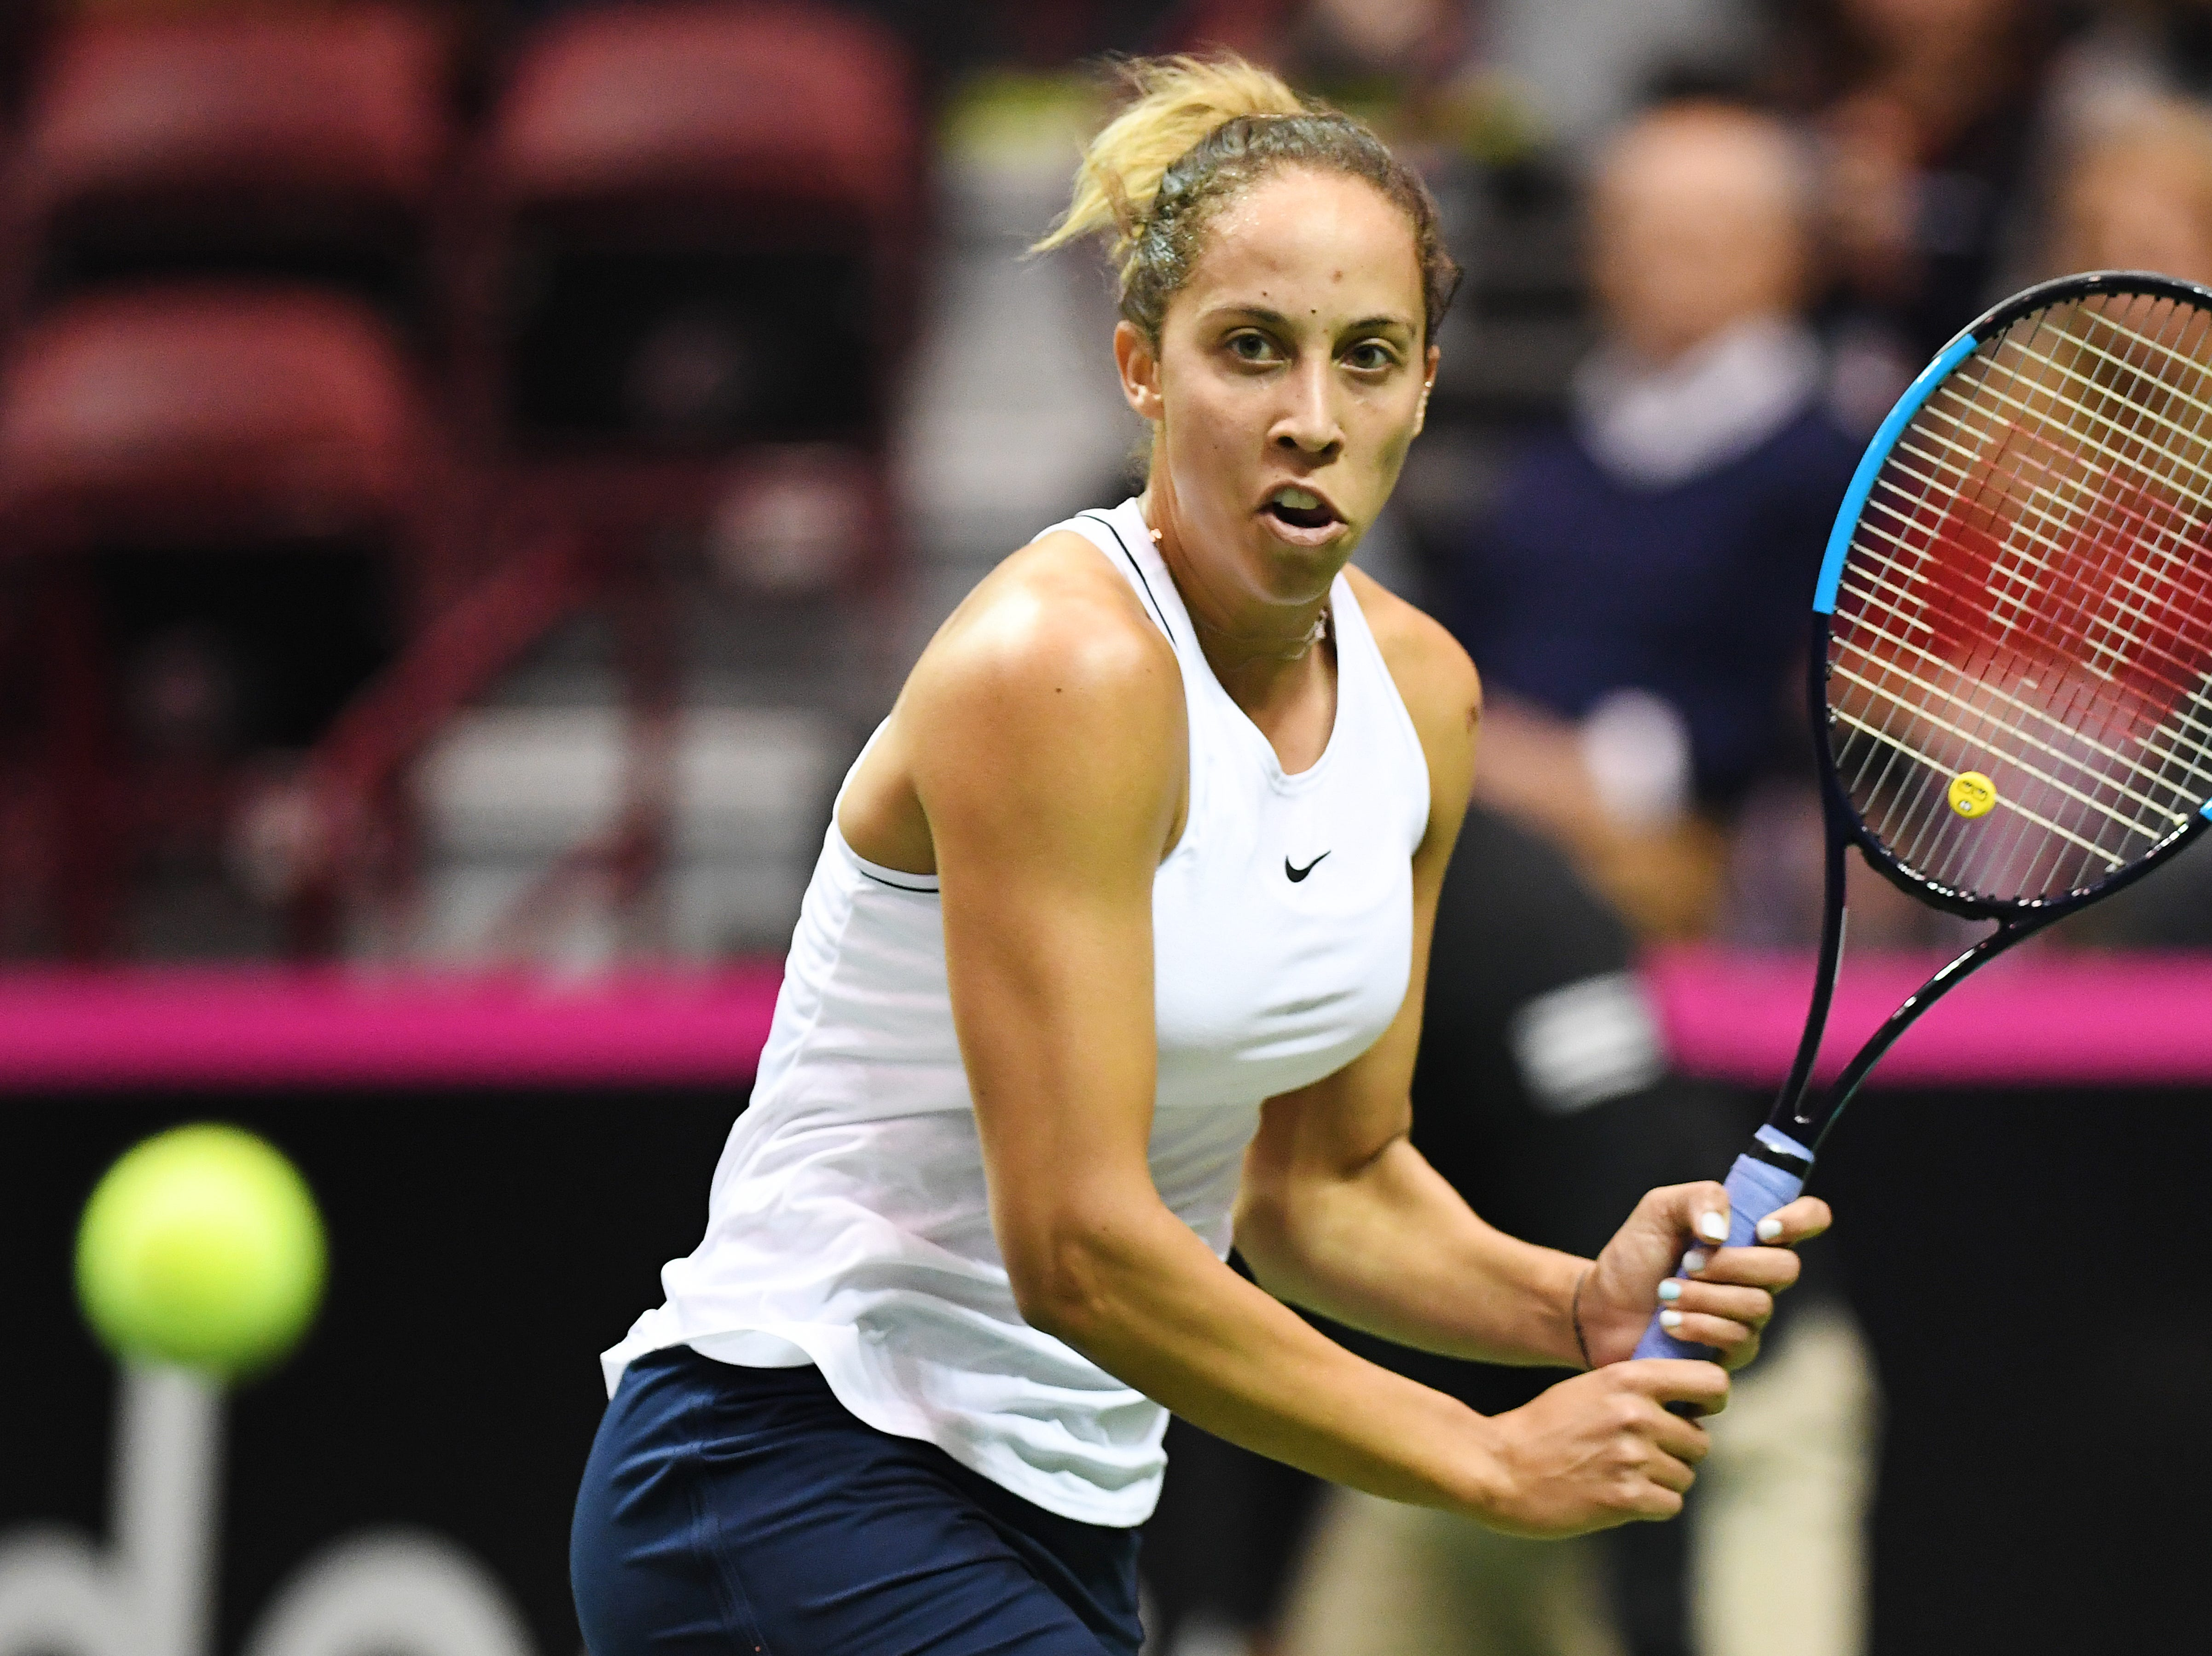 Team USA's Madison Keys prepares to return the ball in her match against Australia's Ashleigh Barty in the first round of the Fed Cup at the U.S. Cellular Center on Feb. 10, 2019.